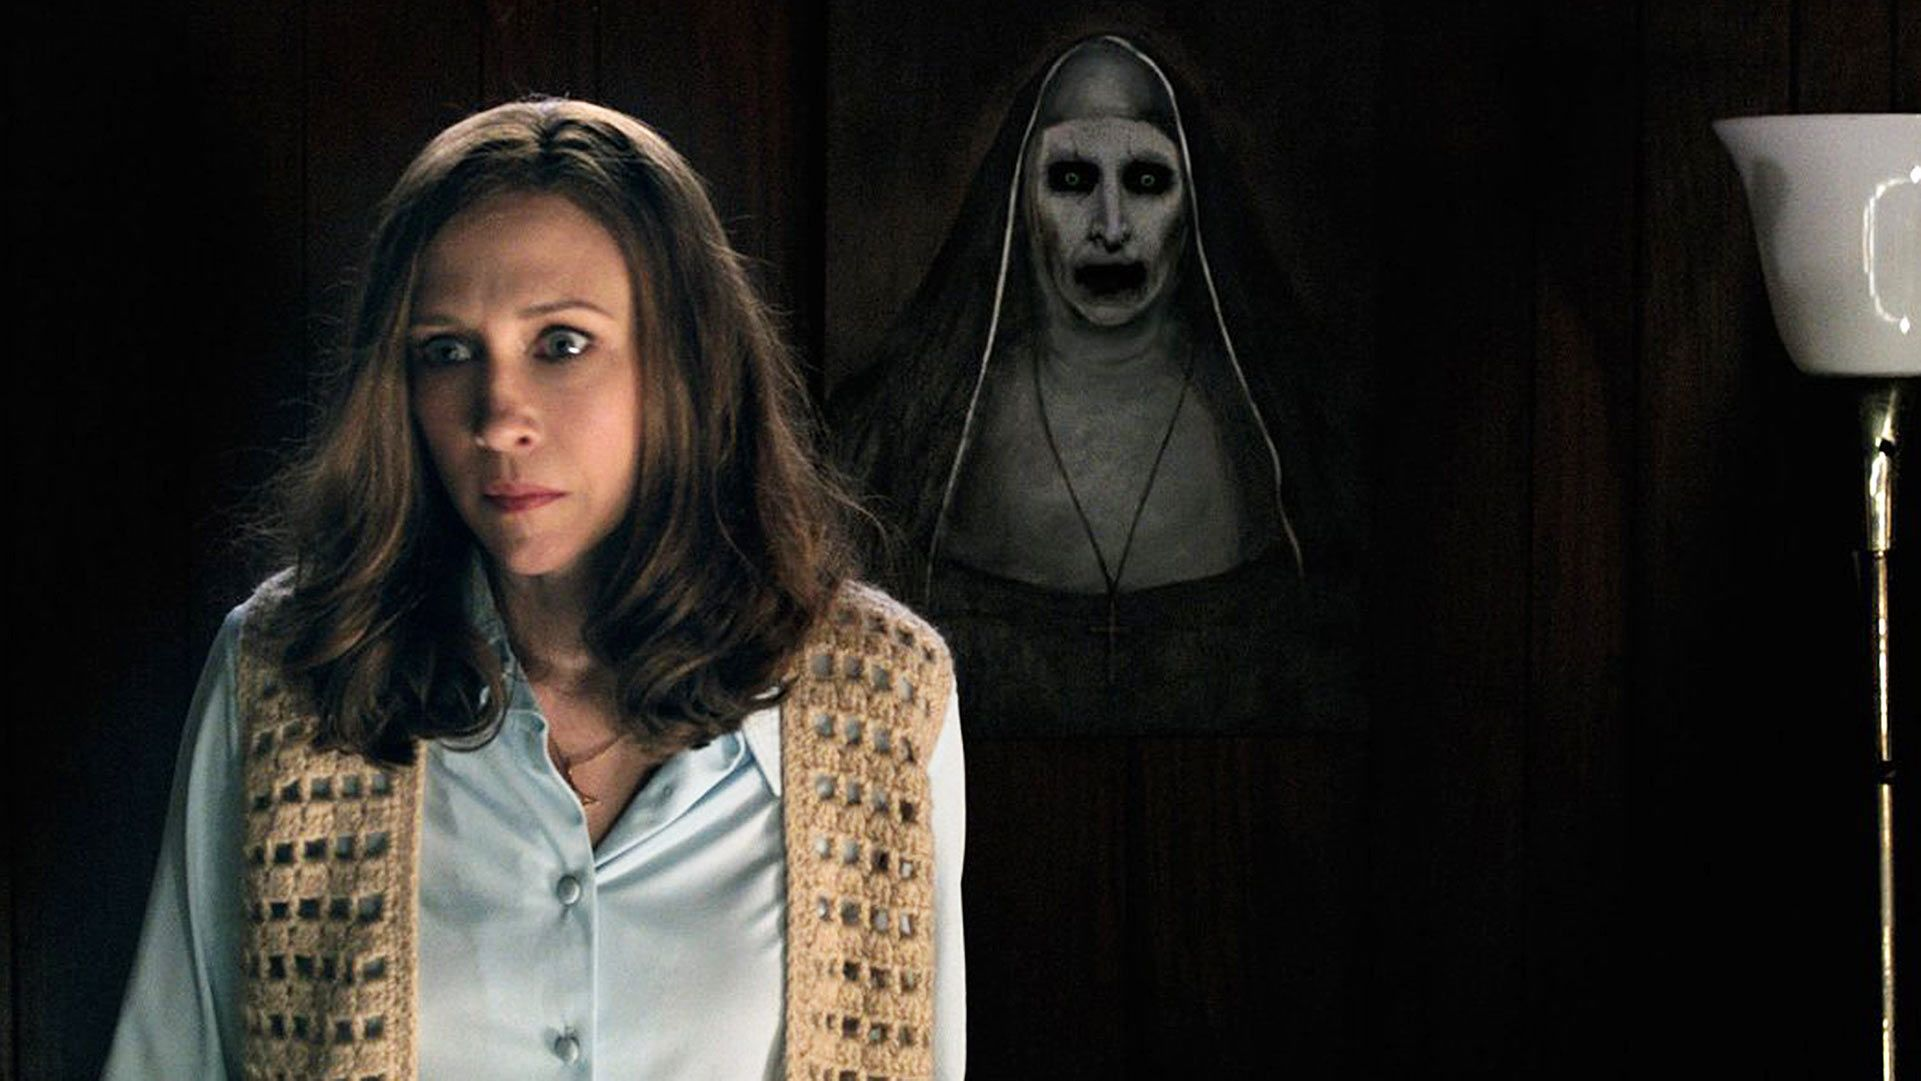 The Conjuring Movies in Order: The Conjuring 2